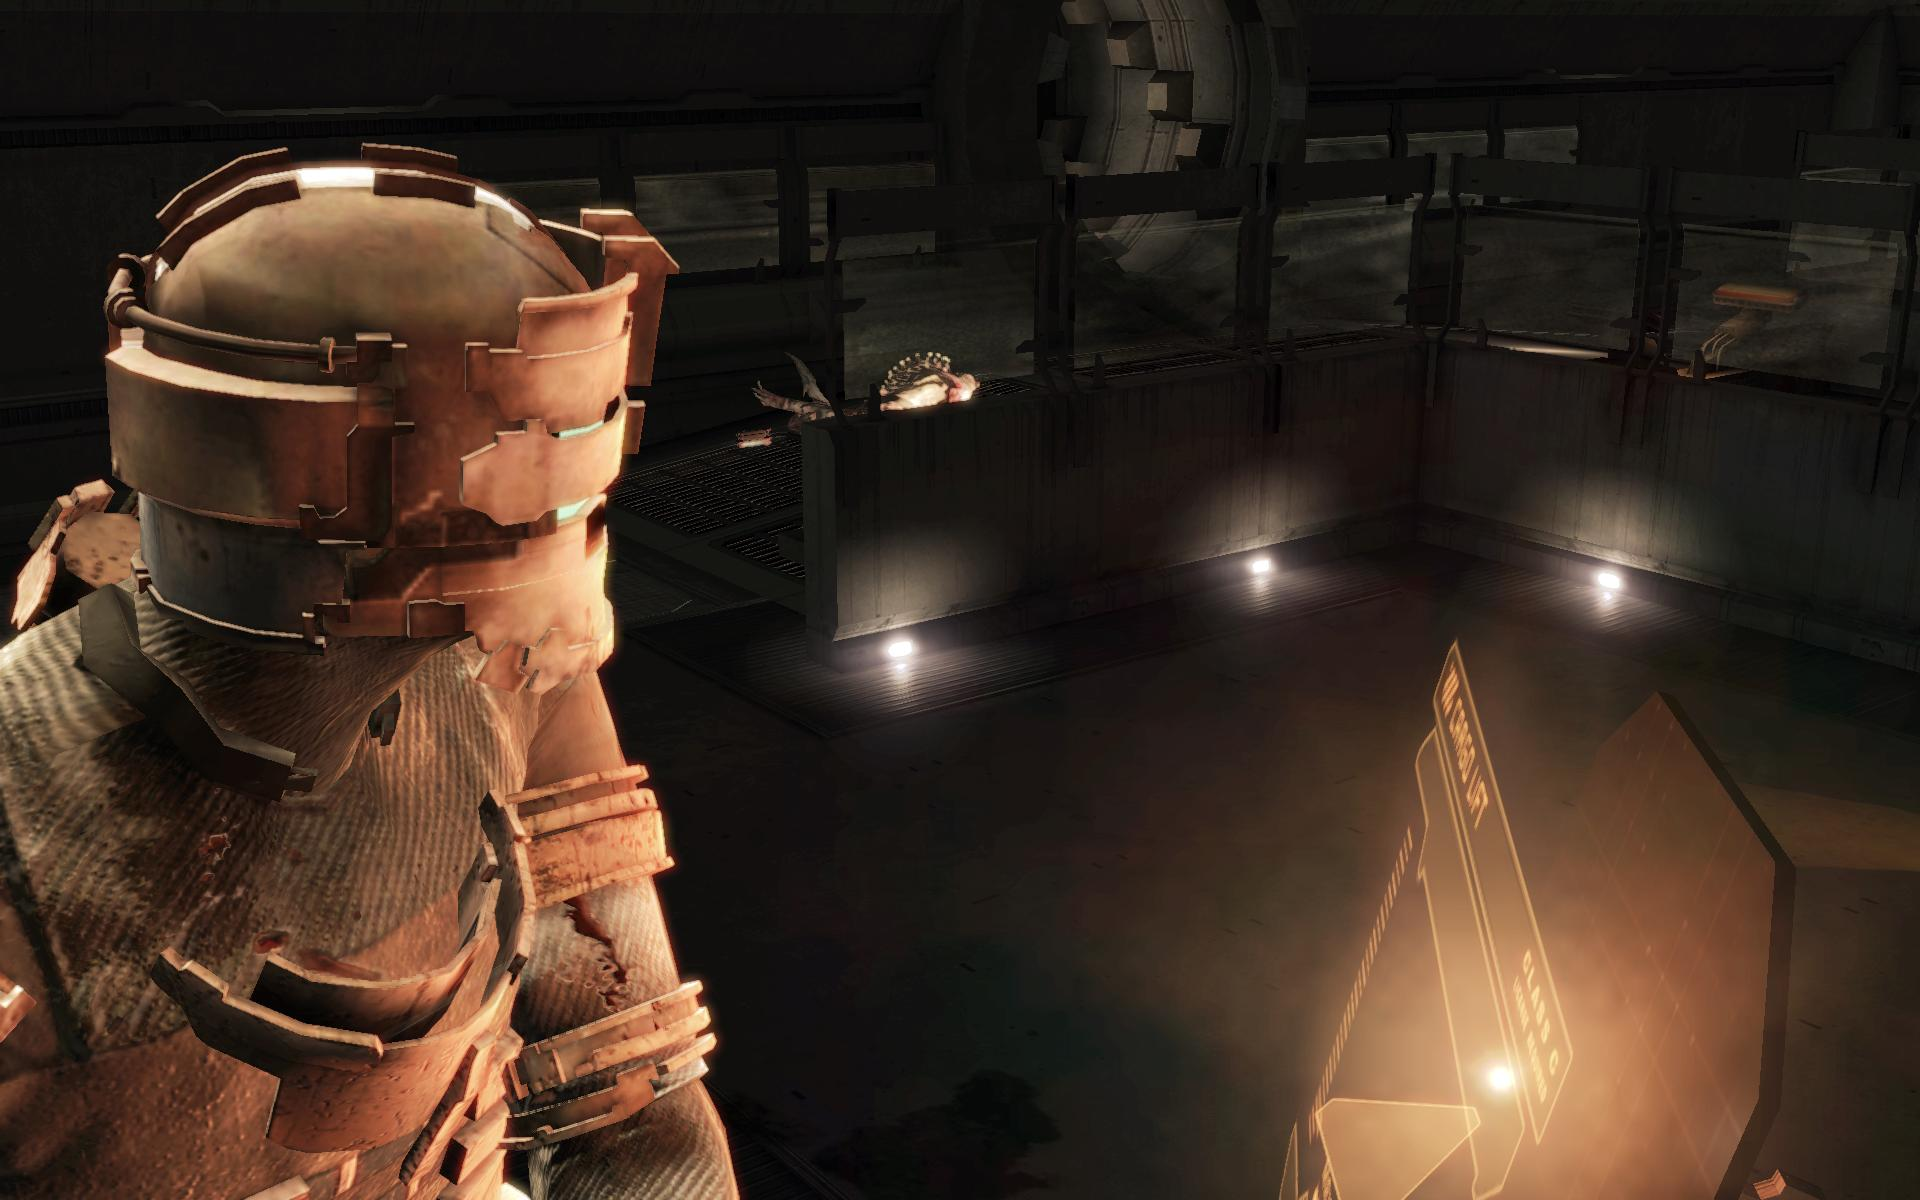 dead-space-2011-01-29-14-51-40-34